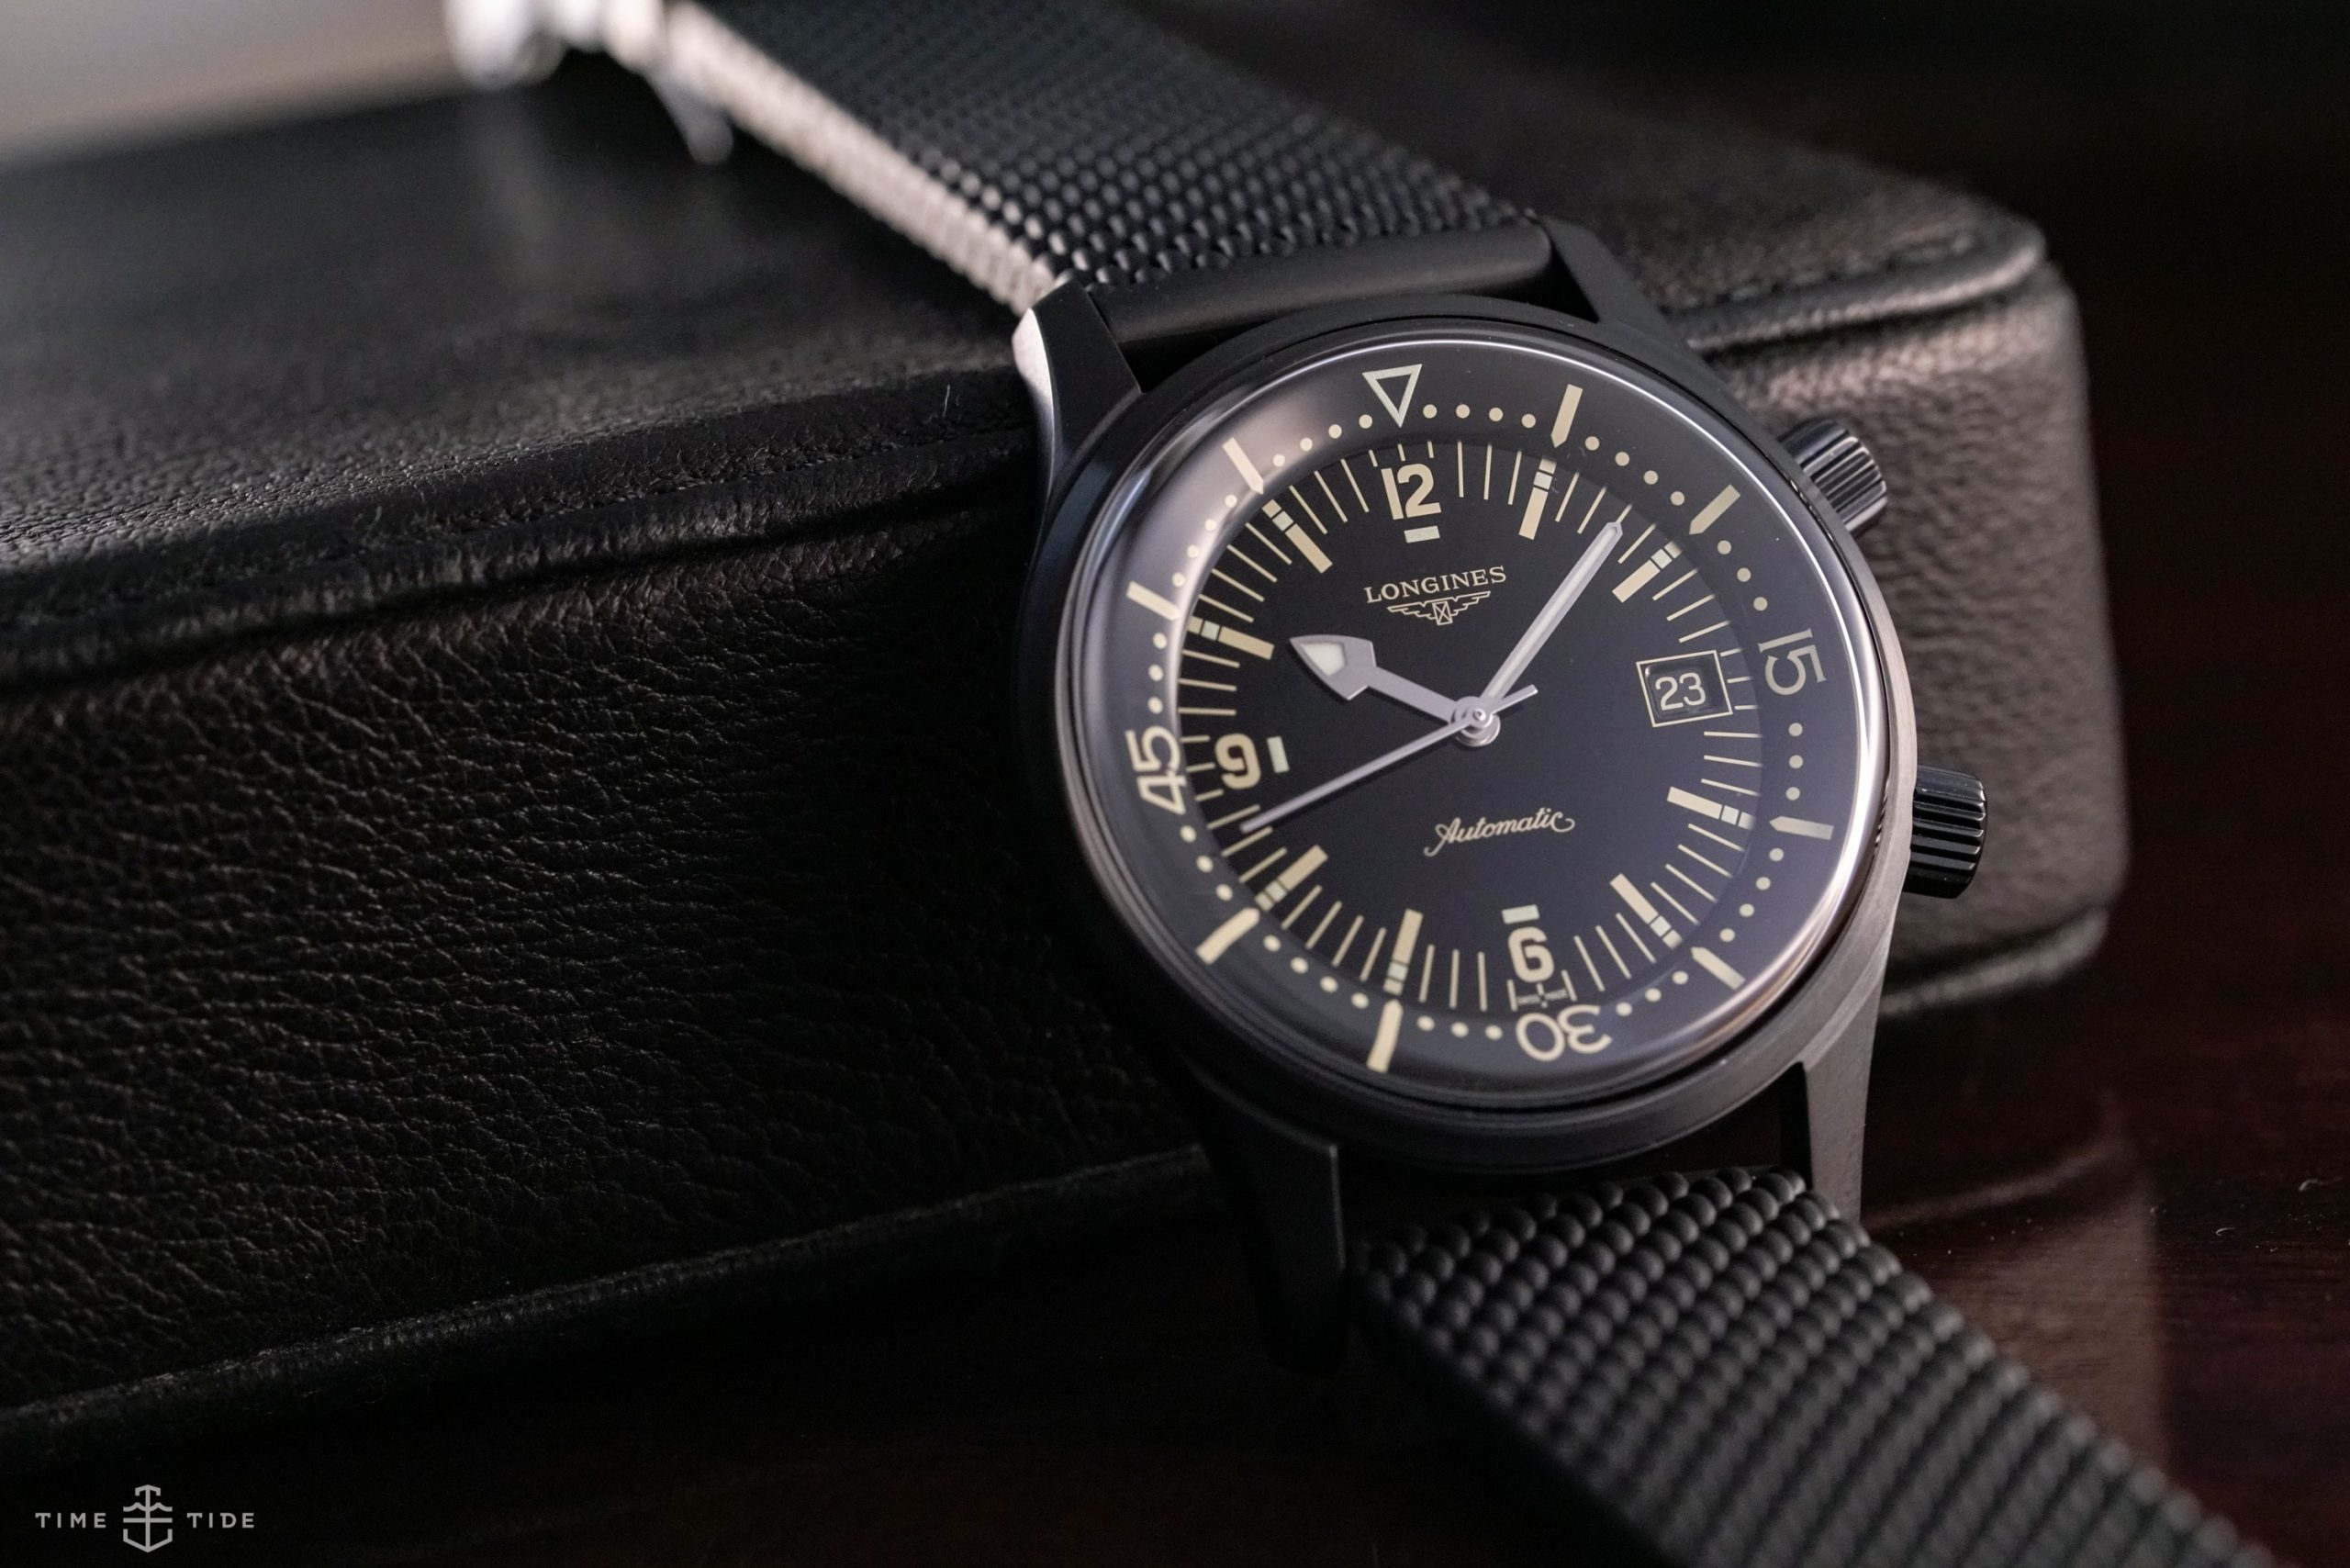 LIST: Andrew's top 10 watches from Basel in pictures